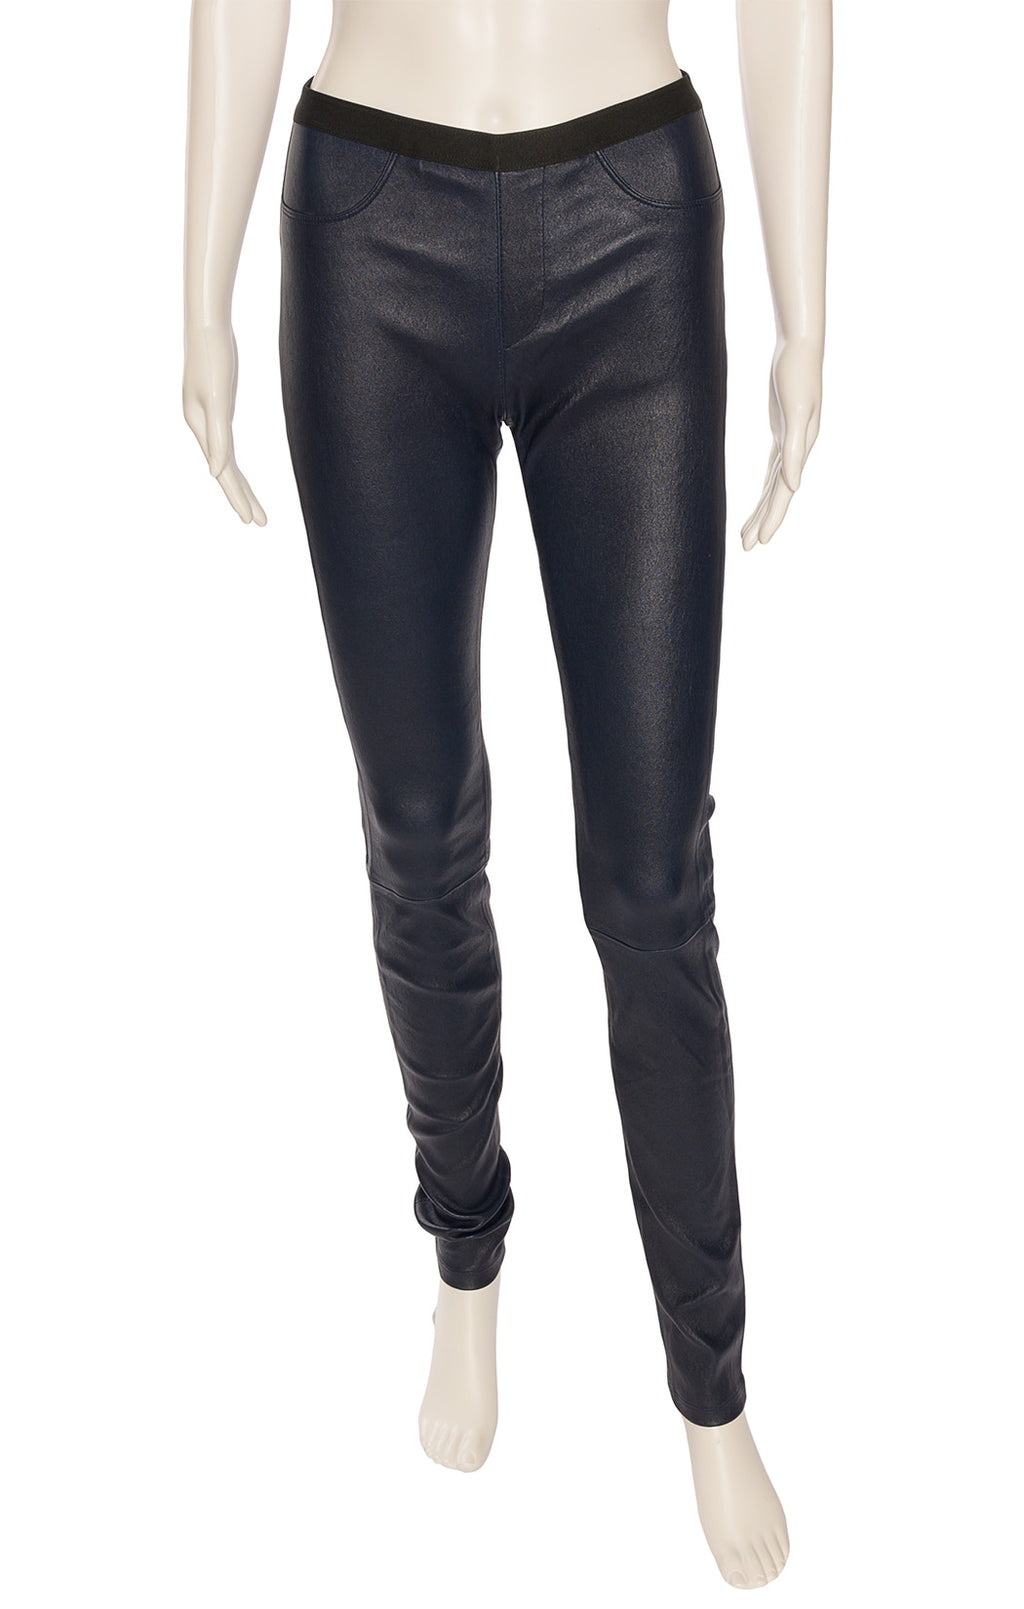 Deep navy lamb leather form fitting pants with front design pockets and back slit pockets